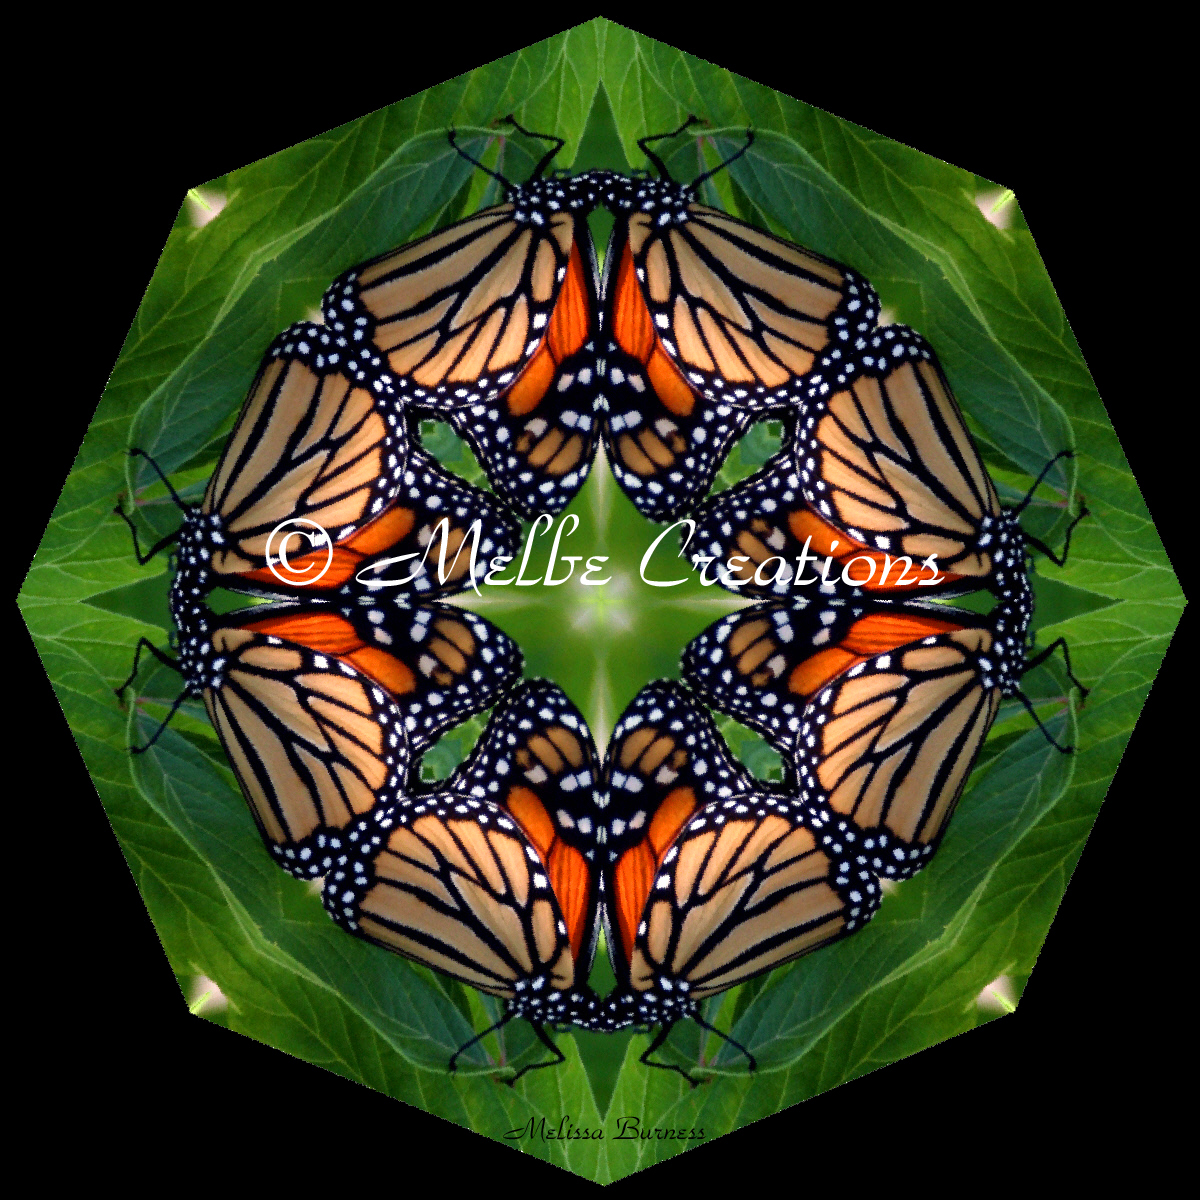 Monarch butterfly symbolic meaning image collections symbol and melbe creations mandala chakra sacred geometry kaleidoscope art by monarch melody buycottarizona buycottarizona